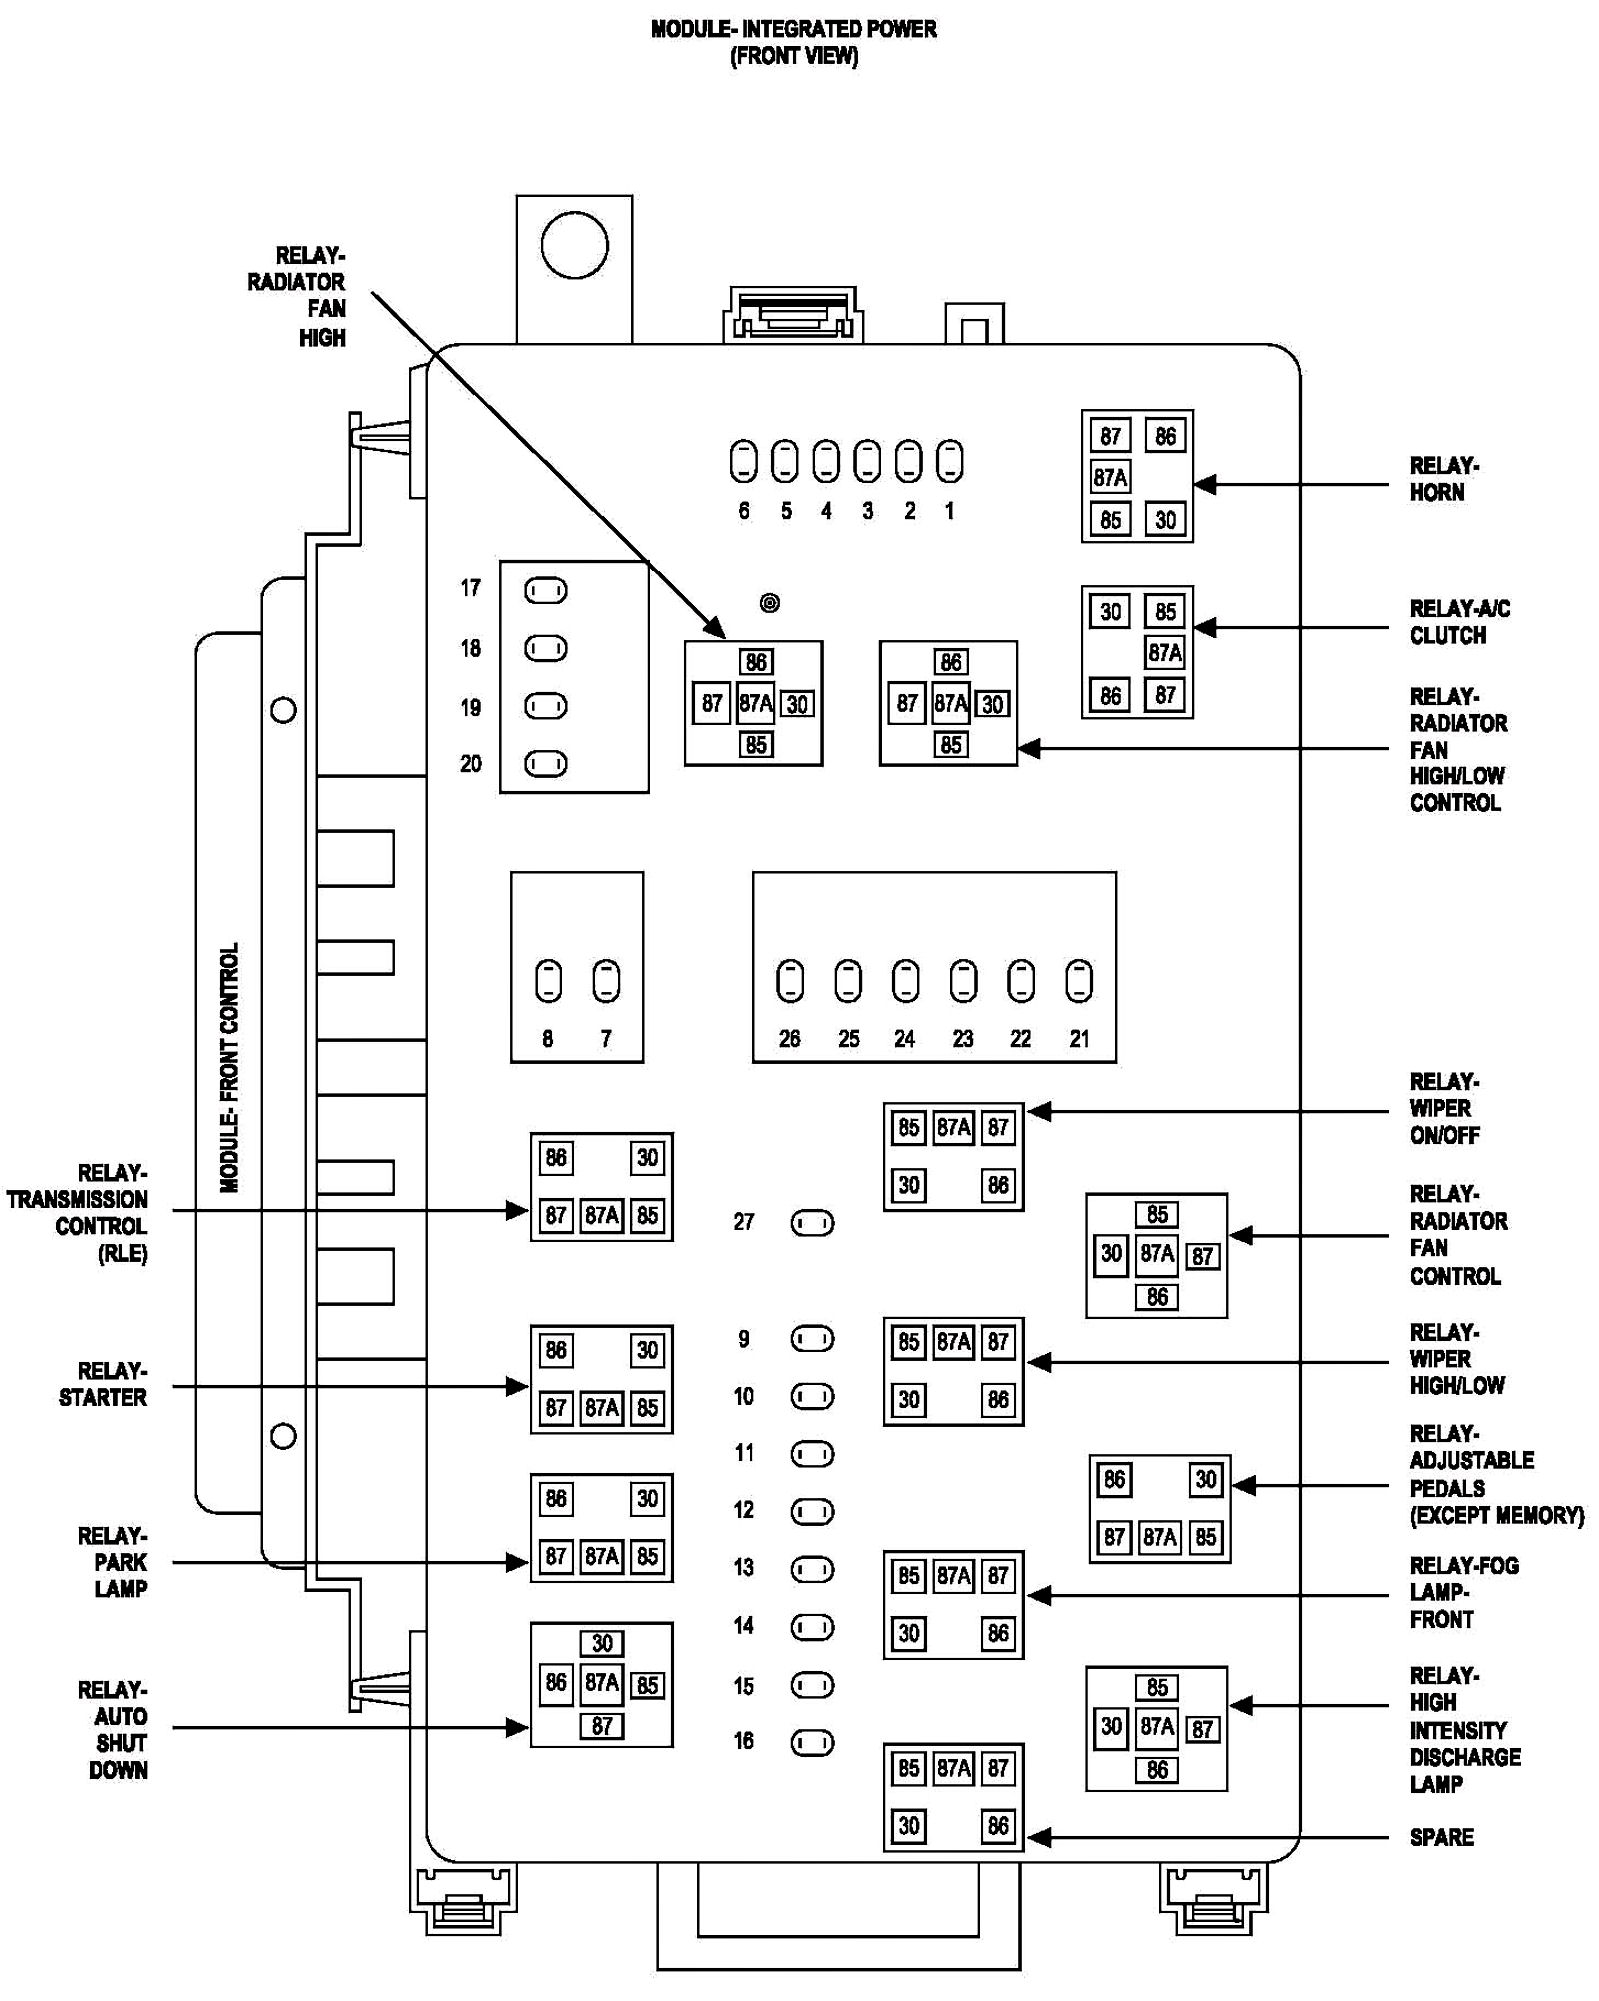 hight resolution of 2009 chrysler sebring fuse diagram wiring diagrams scematic 2004 chrysler sebring on diagram for dodge caravan 2000 2 4l fuse box